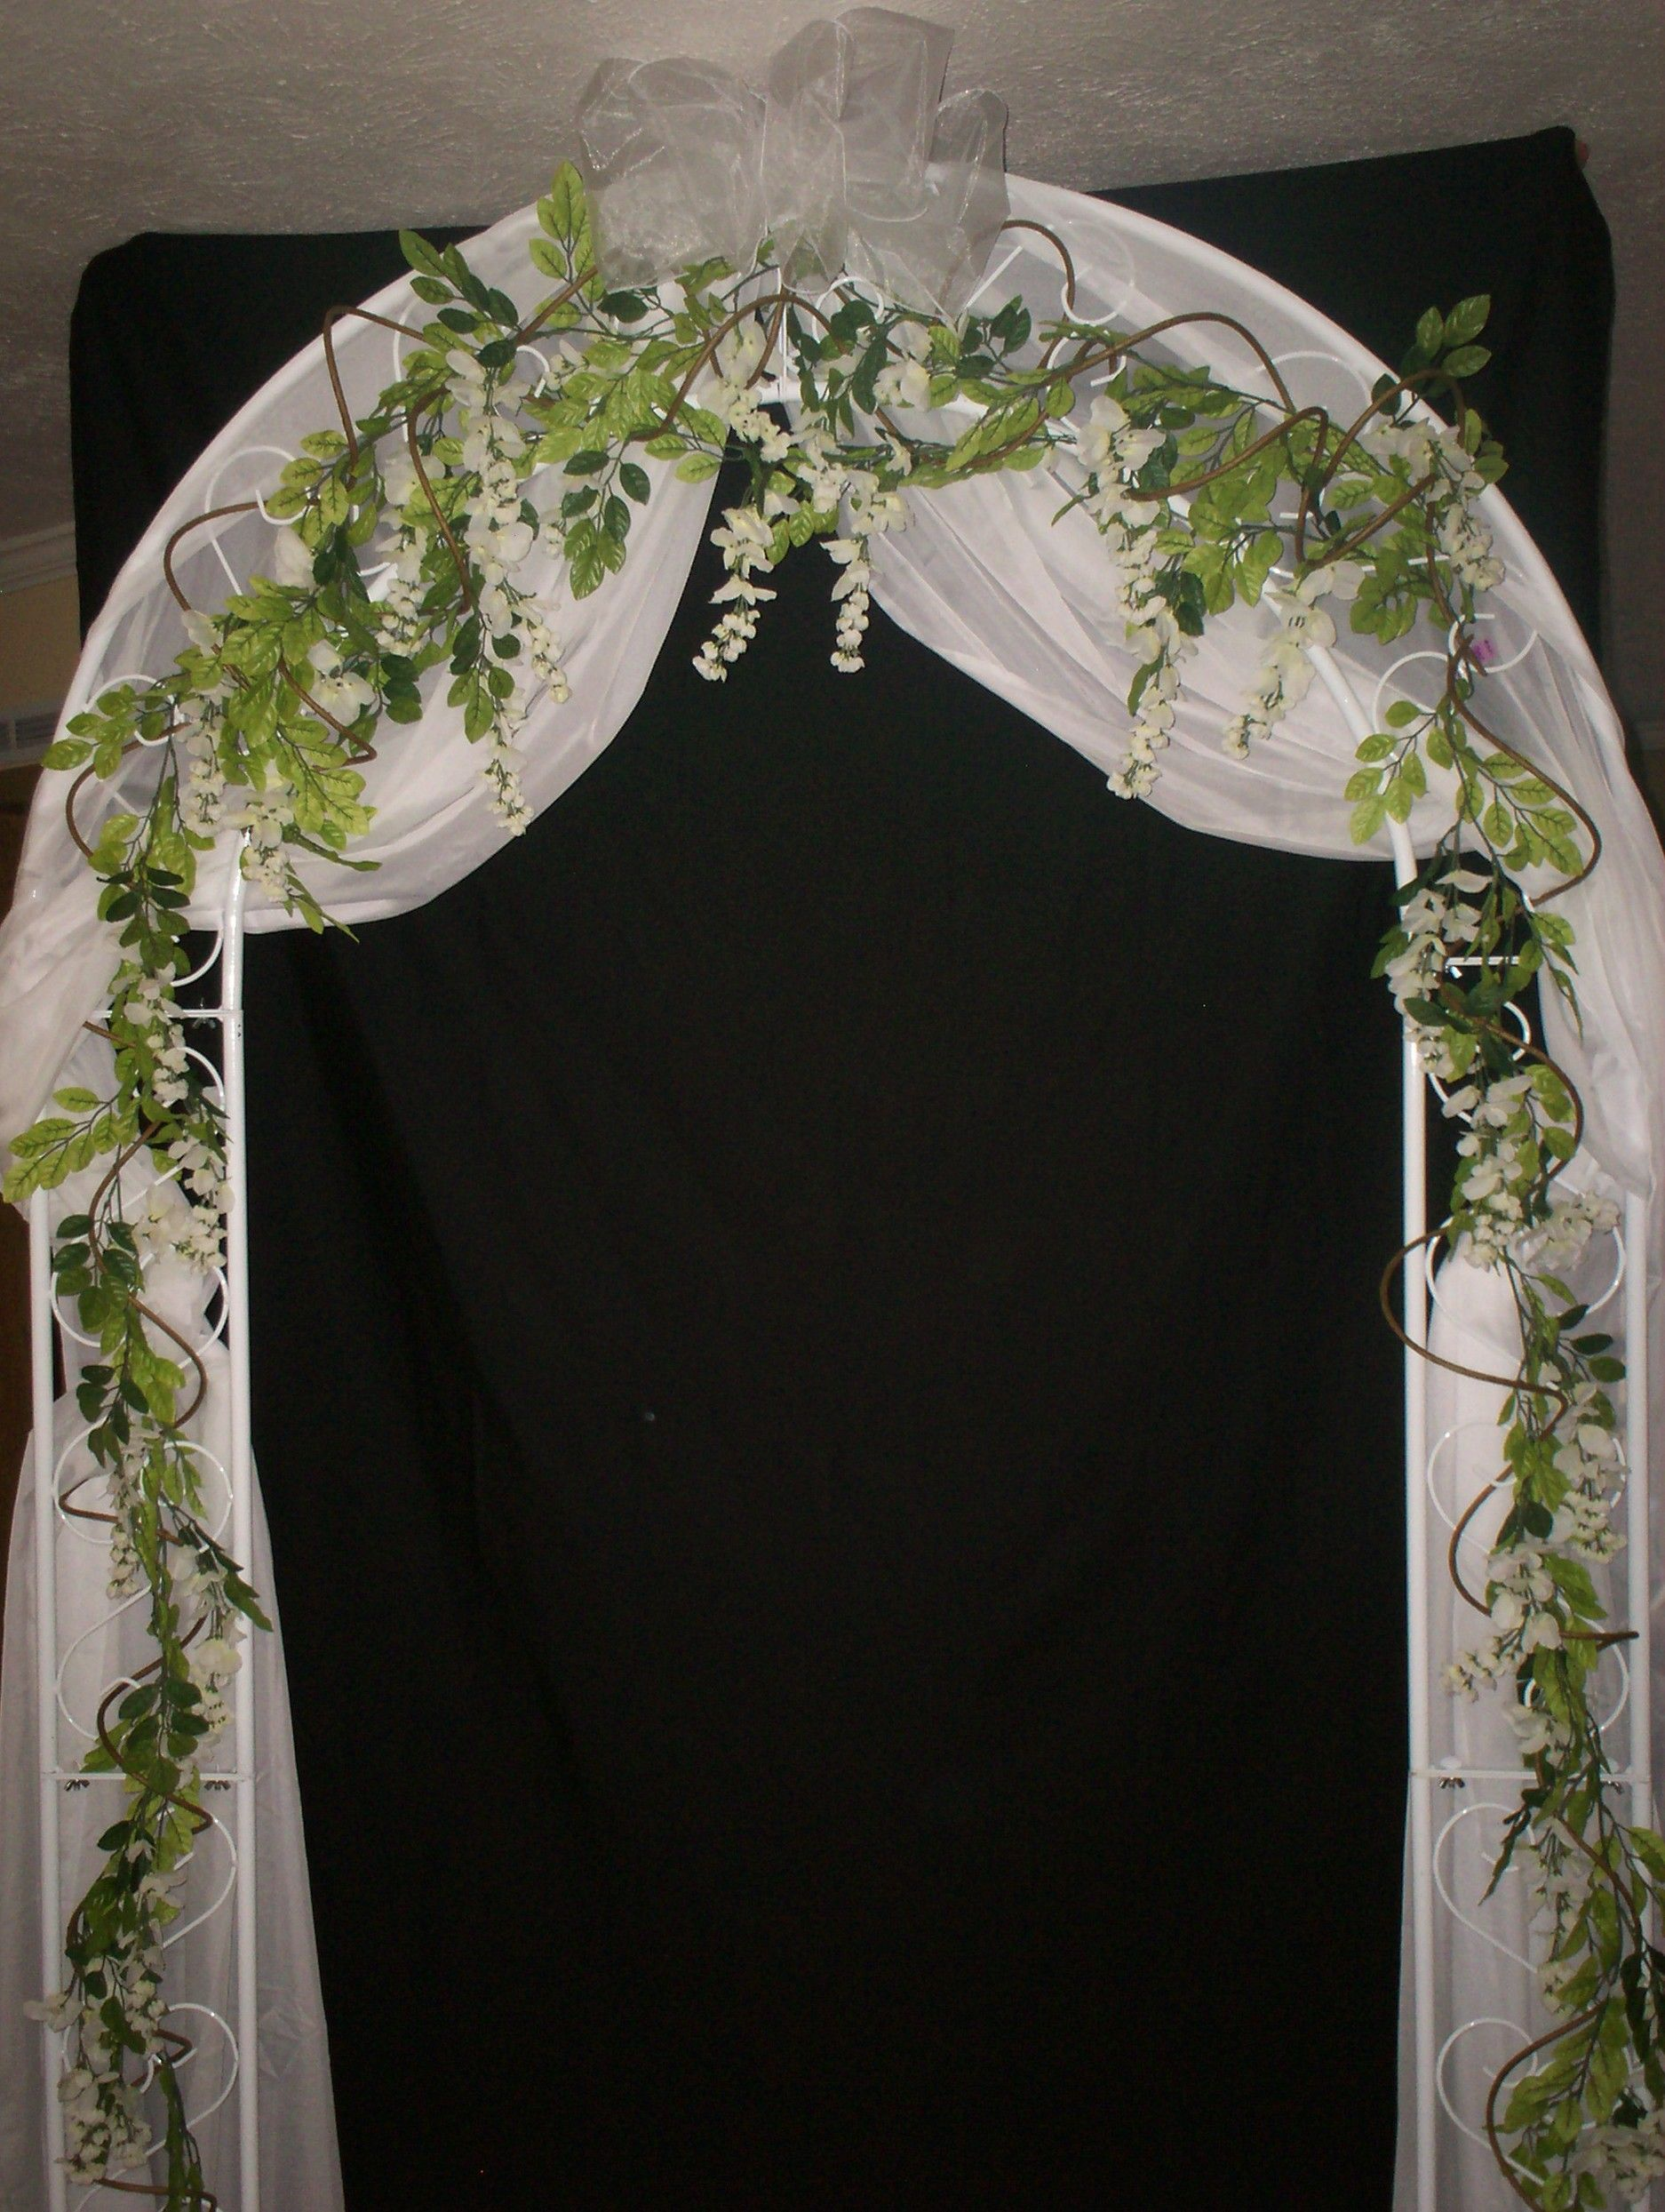 Wedding flower arrangements for arches wedding arch with hanging wedding flower arrangements for arches wedding arch with hanging curly wisteria vines and white organza junglespirit Gallery